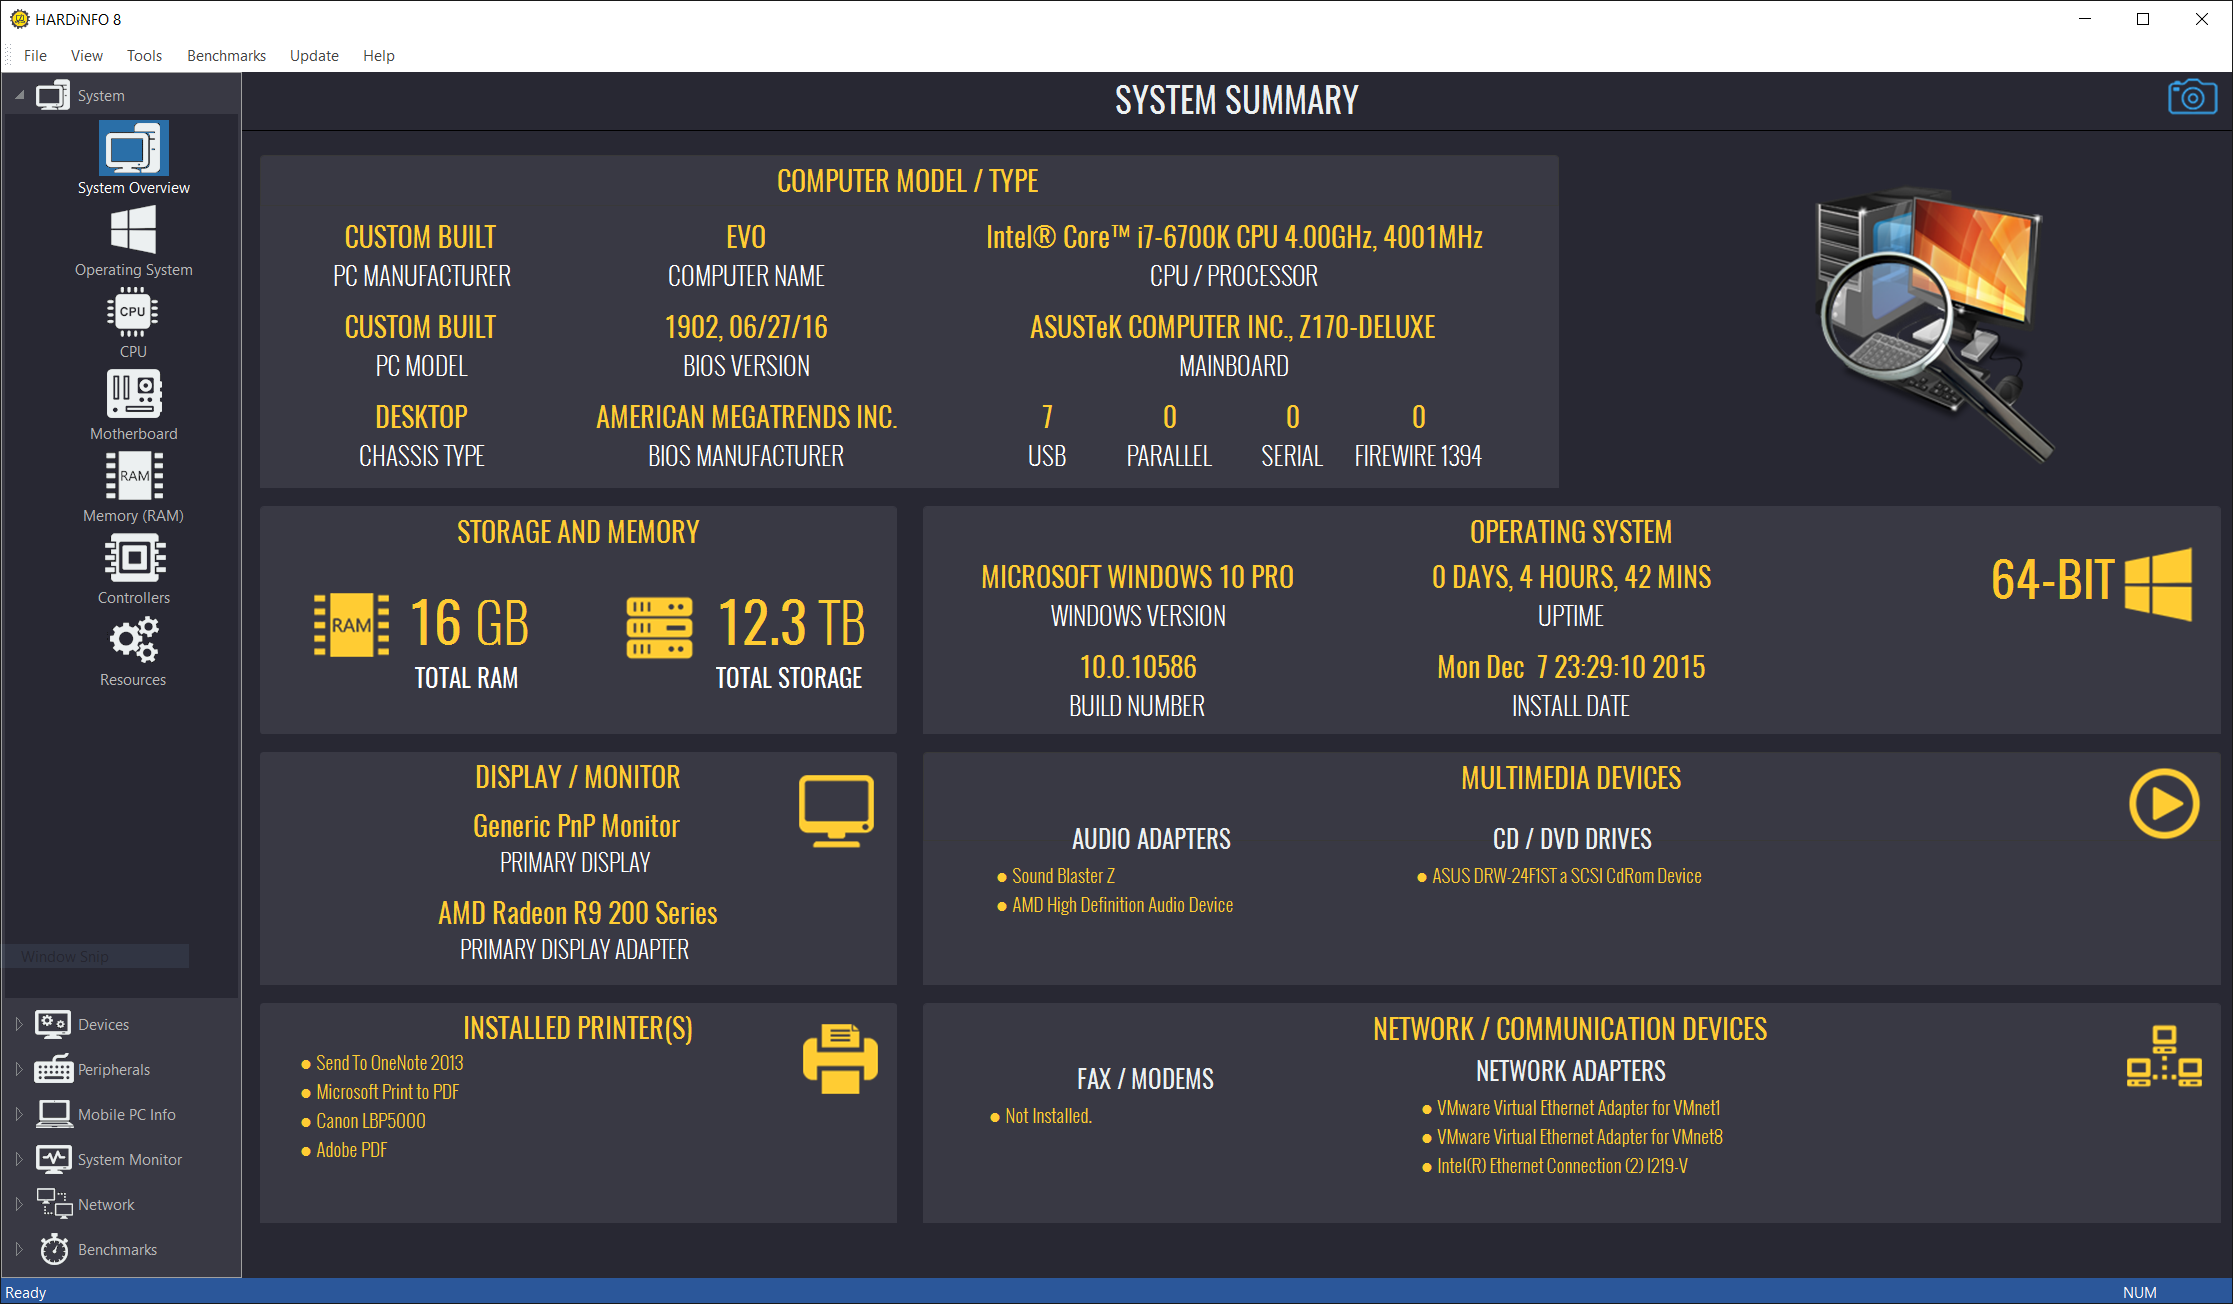 HARDiNFO - System Information and Benchmark   Ultimate Systems